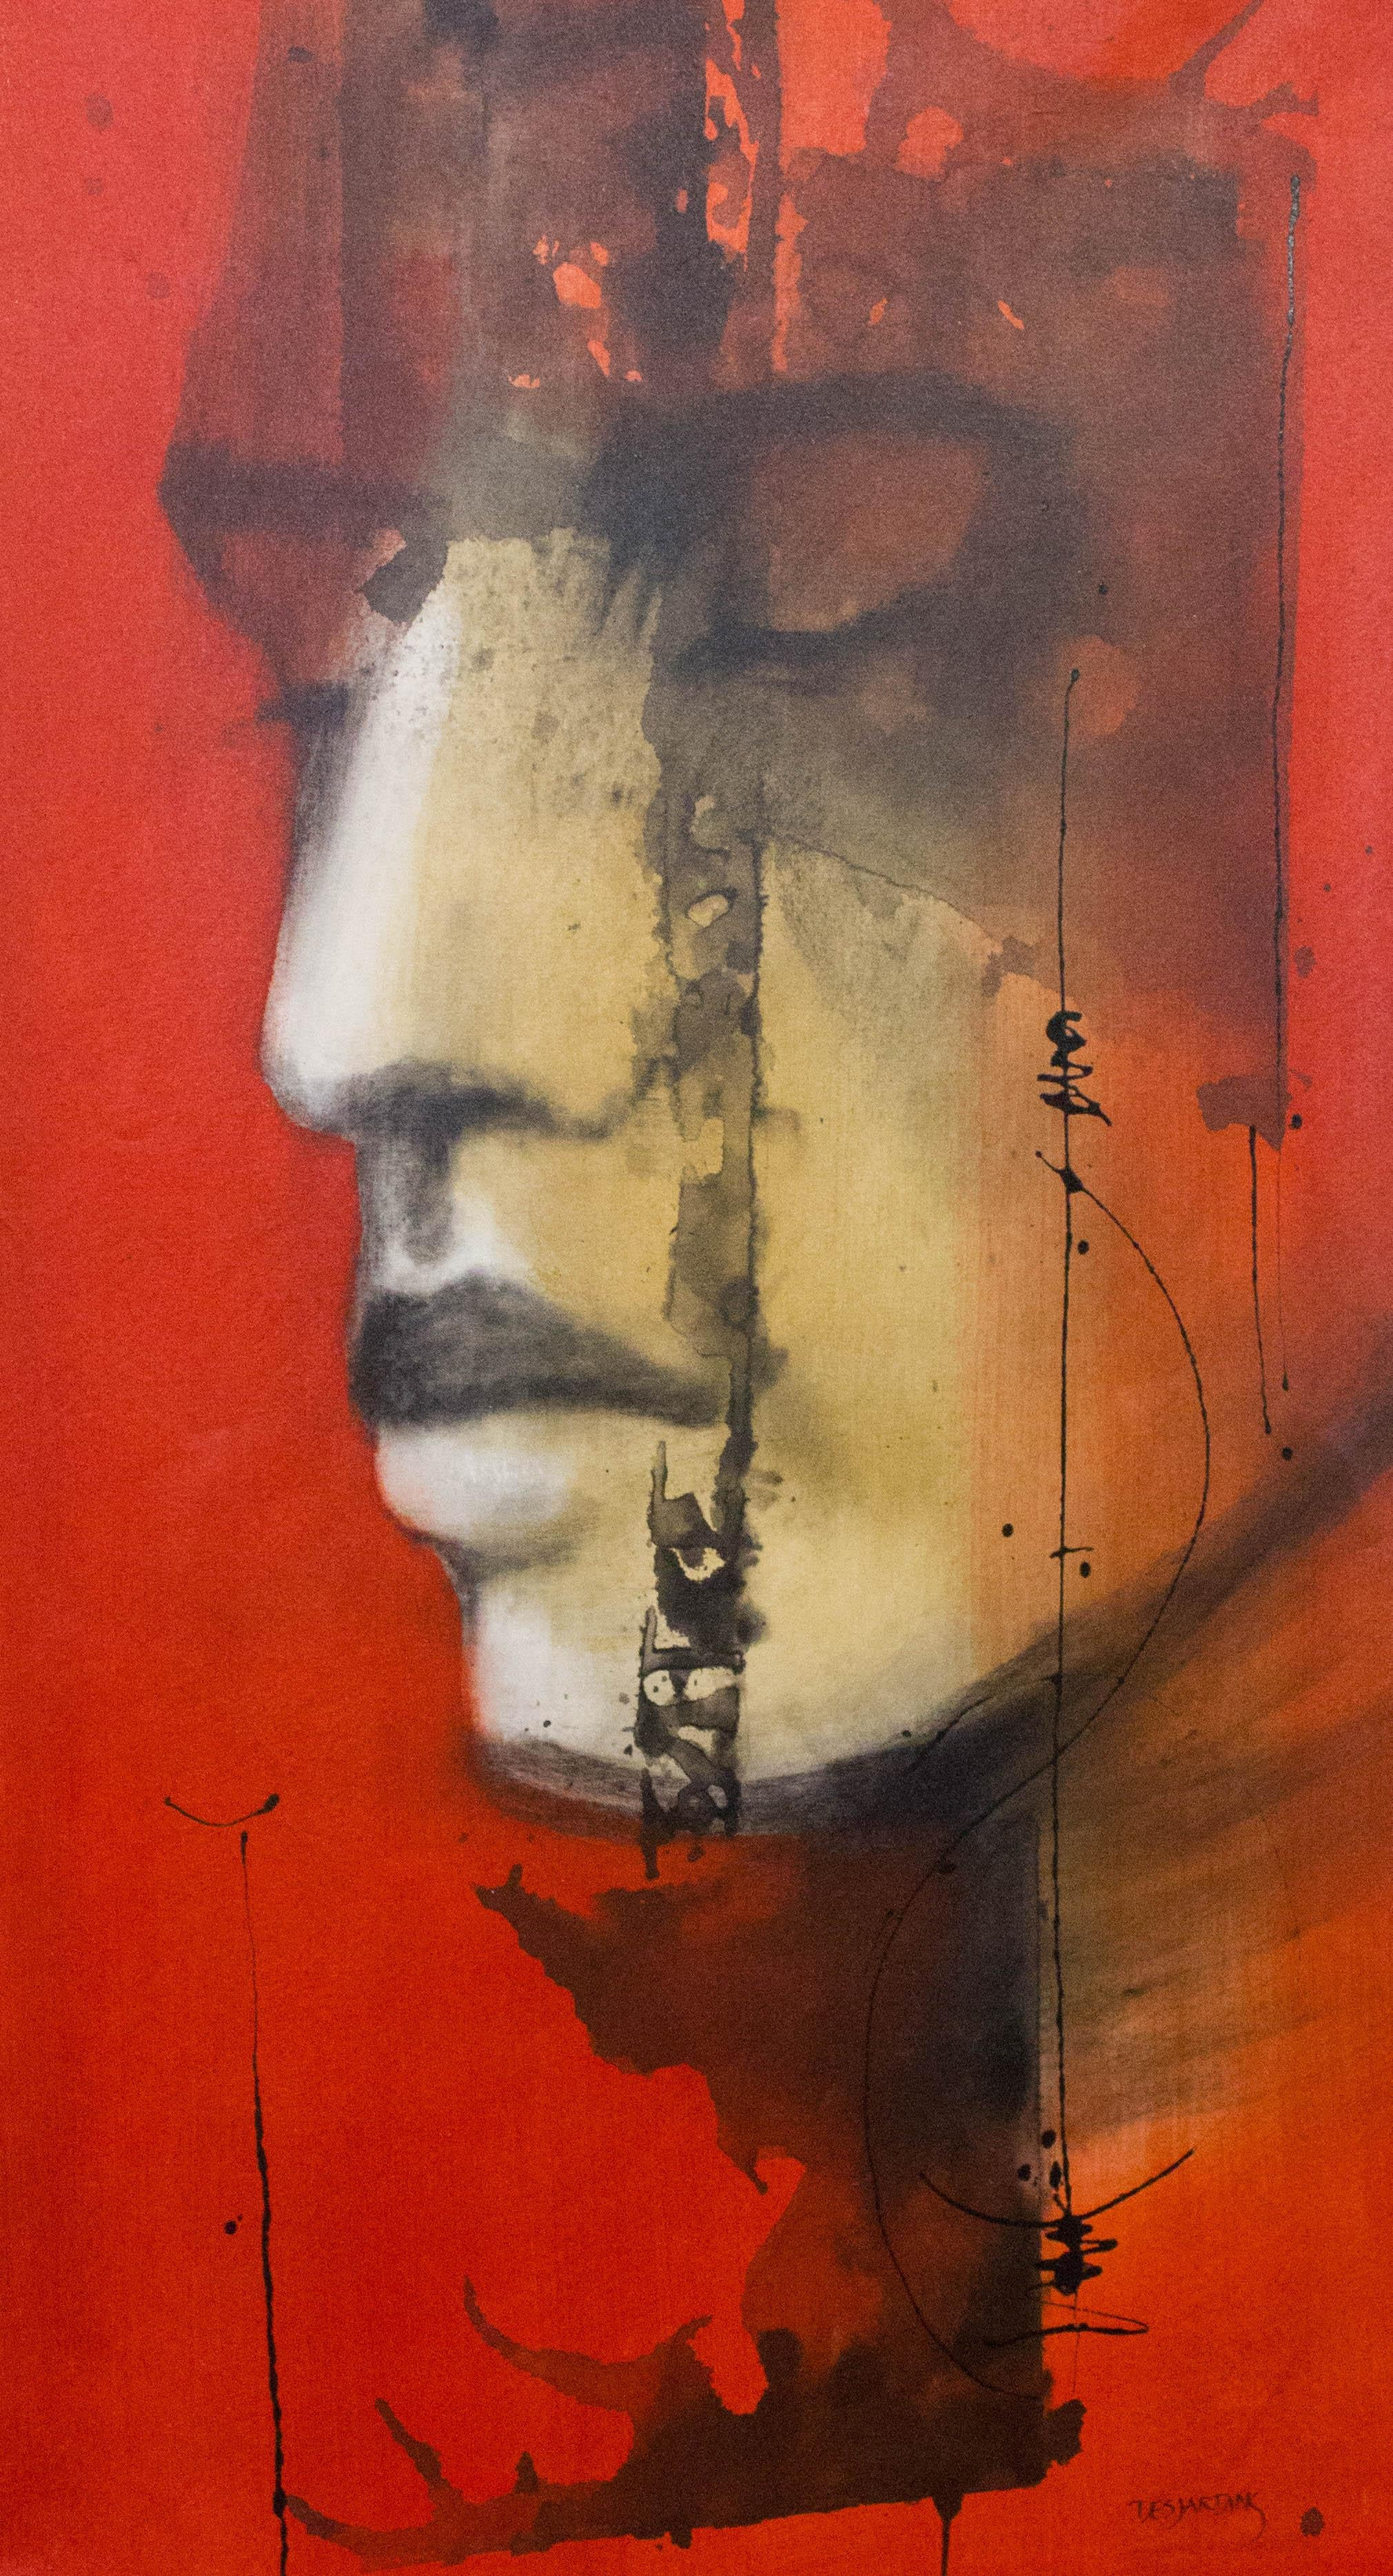 Trust-Painting, Charcoal, Acrylic, Oil, Red, Expressionism, Faces